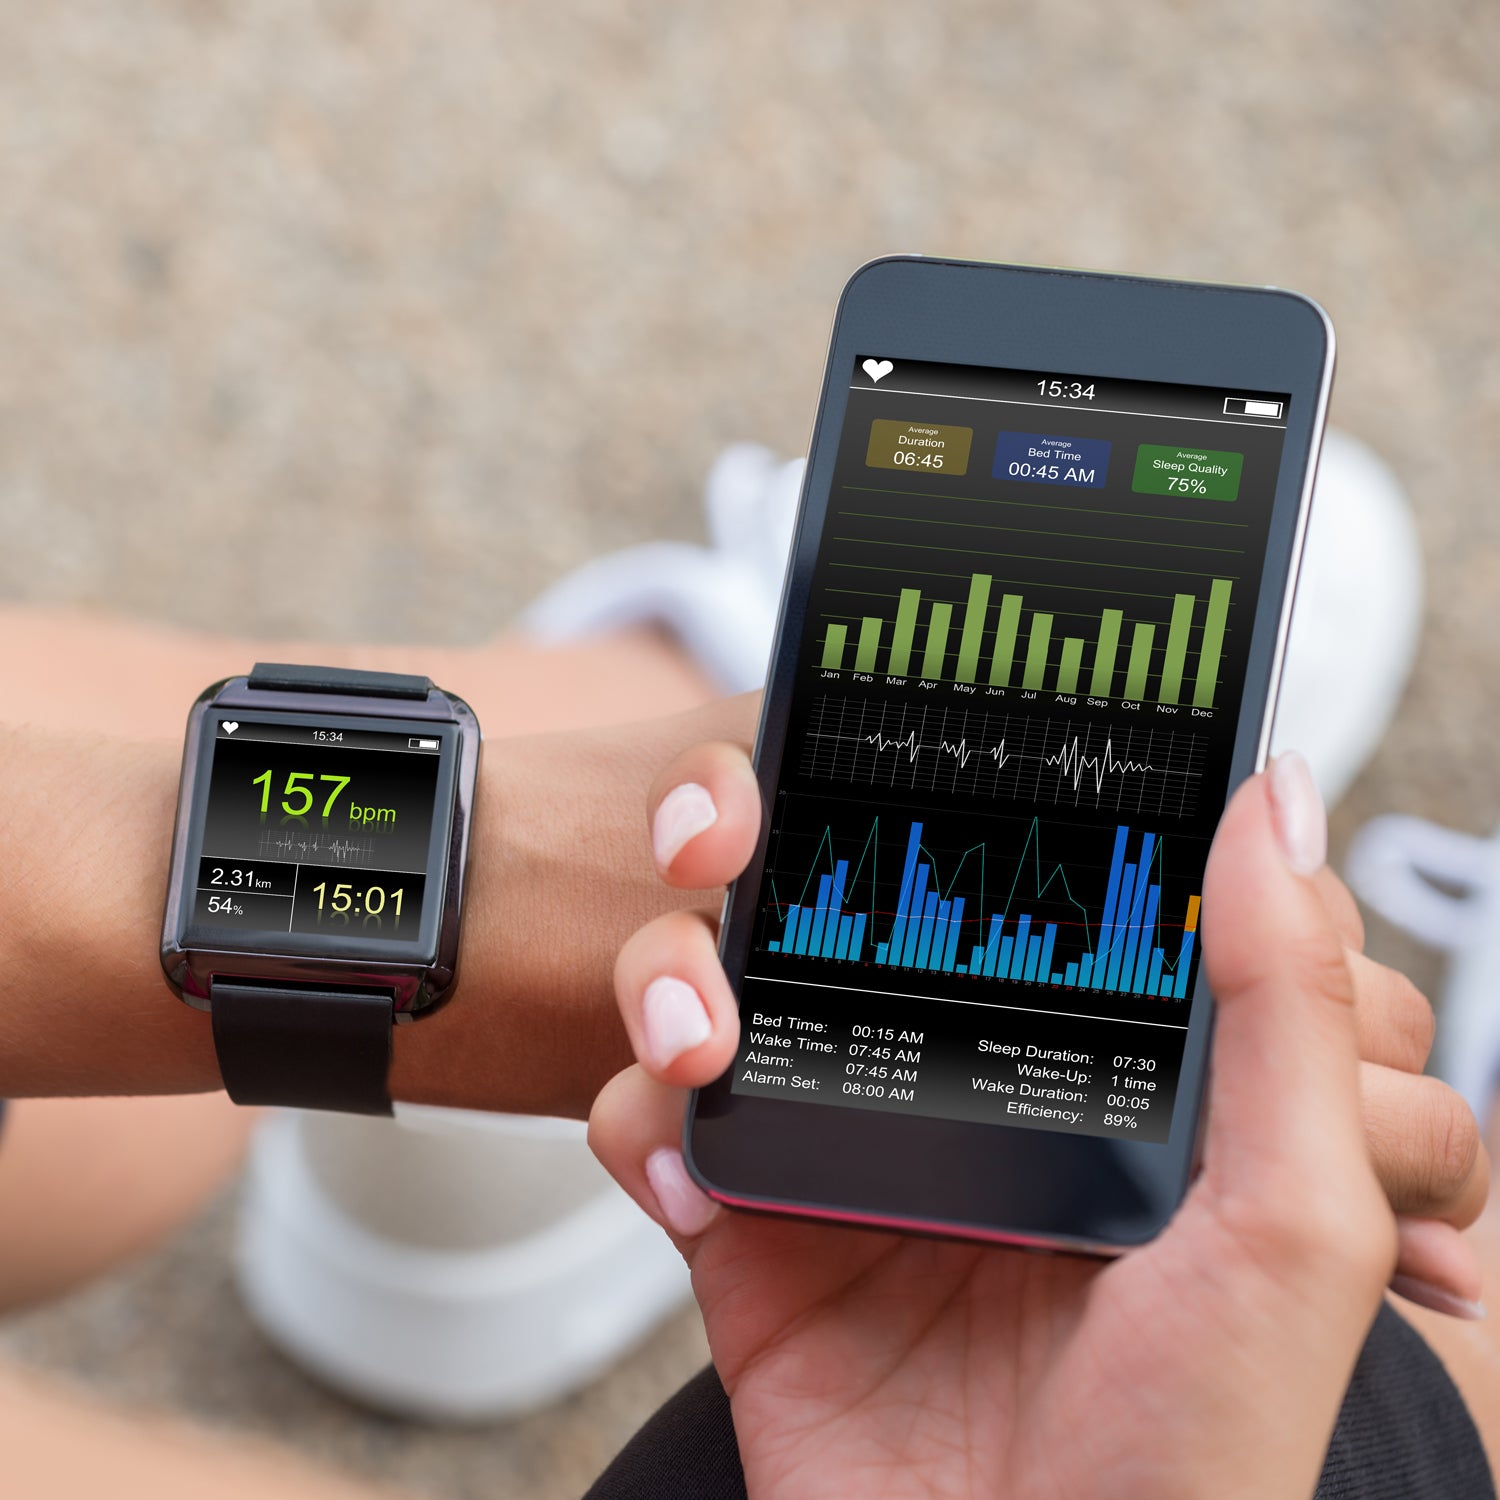 How Accurate Are Wrist-Based Heart Rate Monitors?